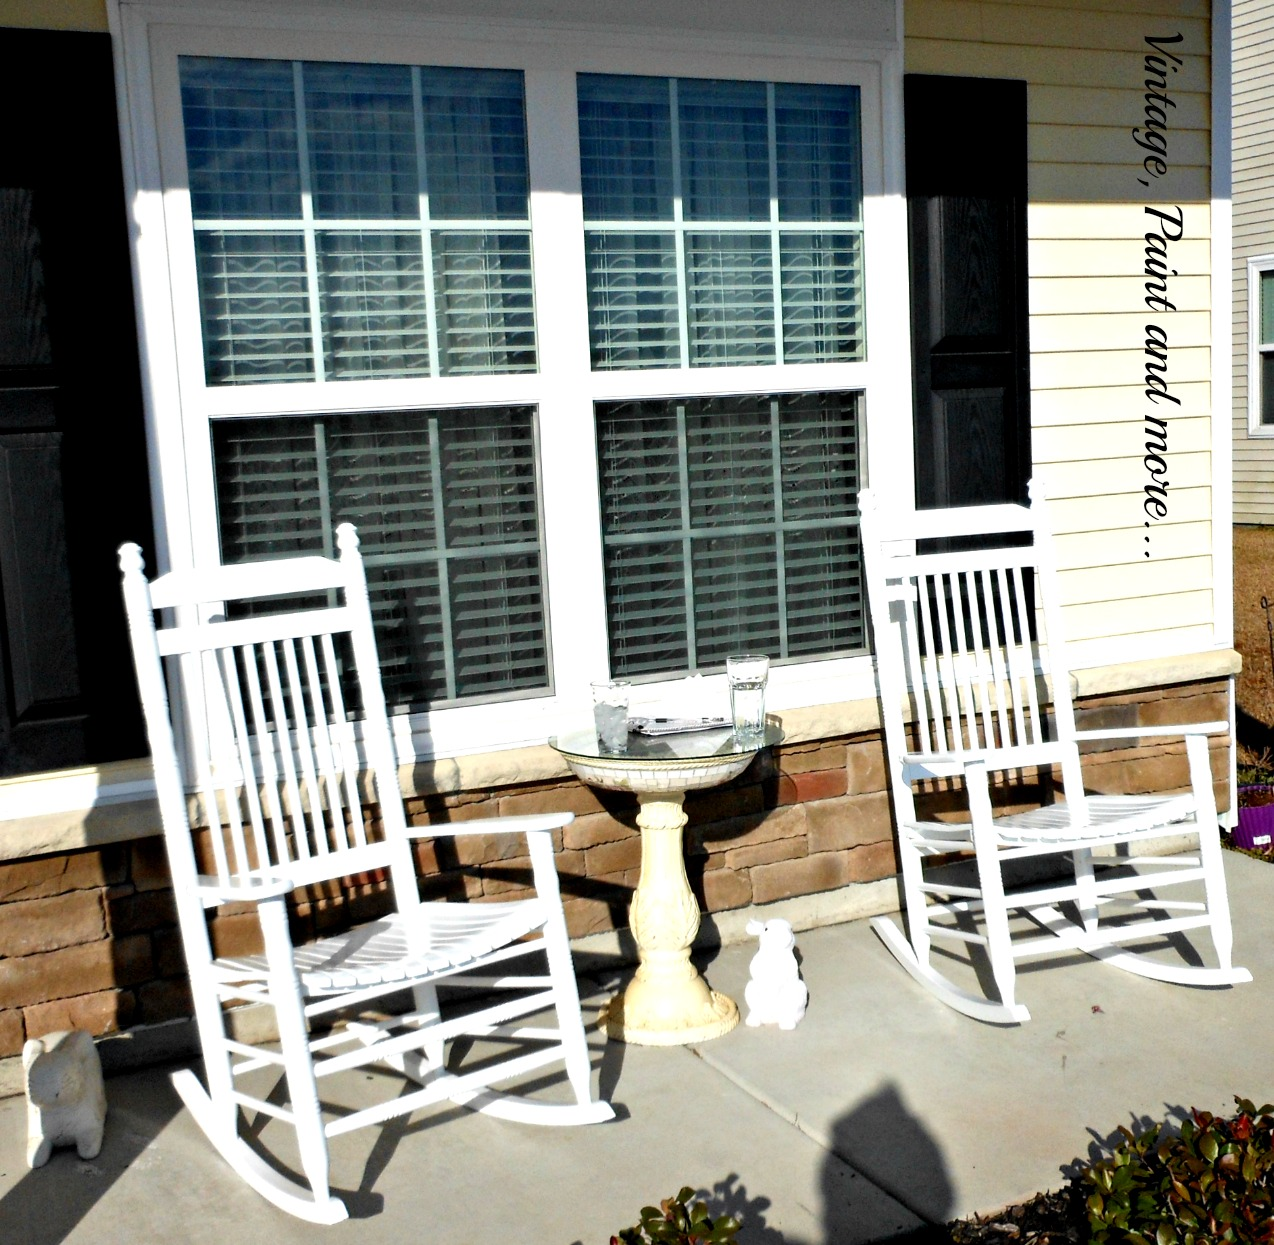 A Southern front porch made for sitting and rocking in the afternoon sun